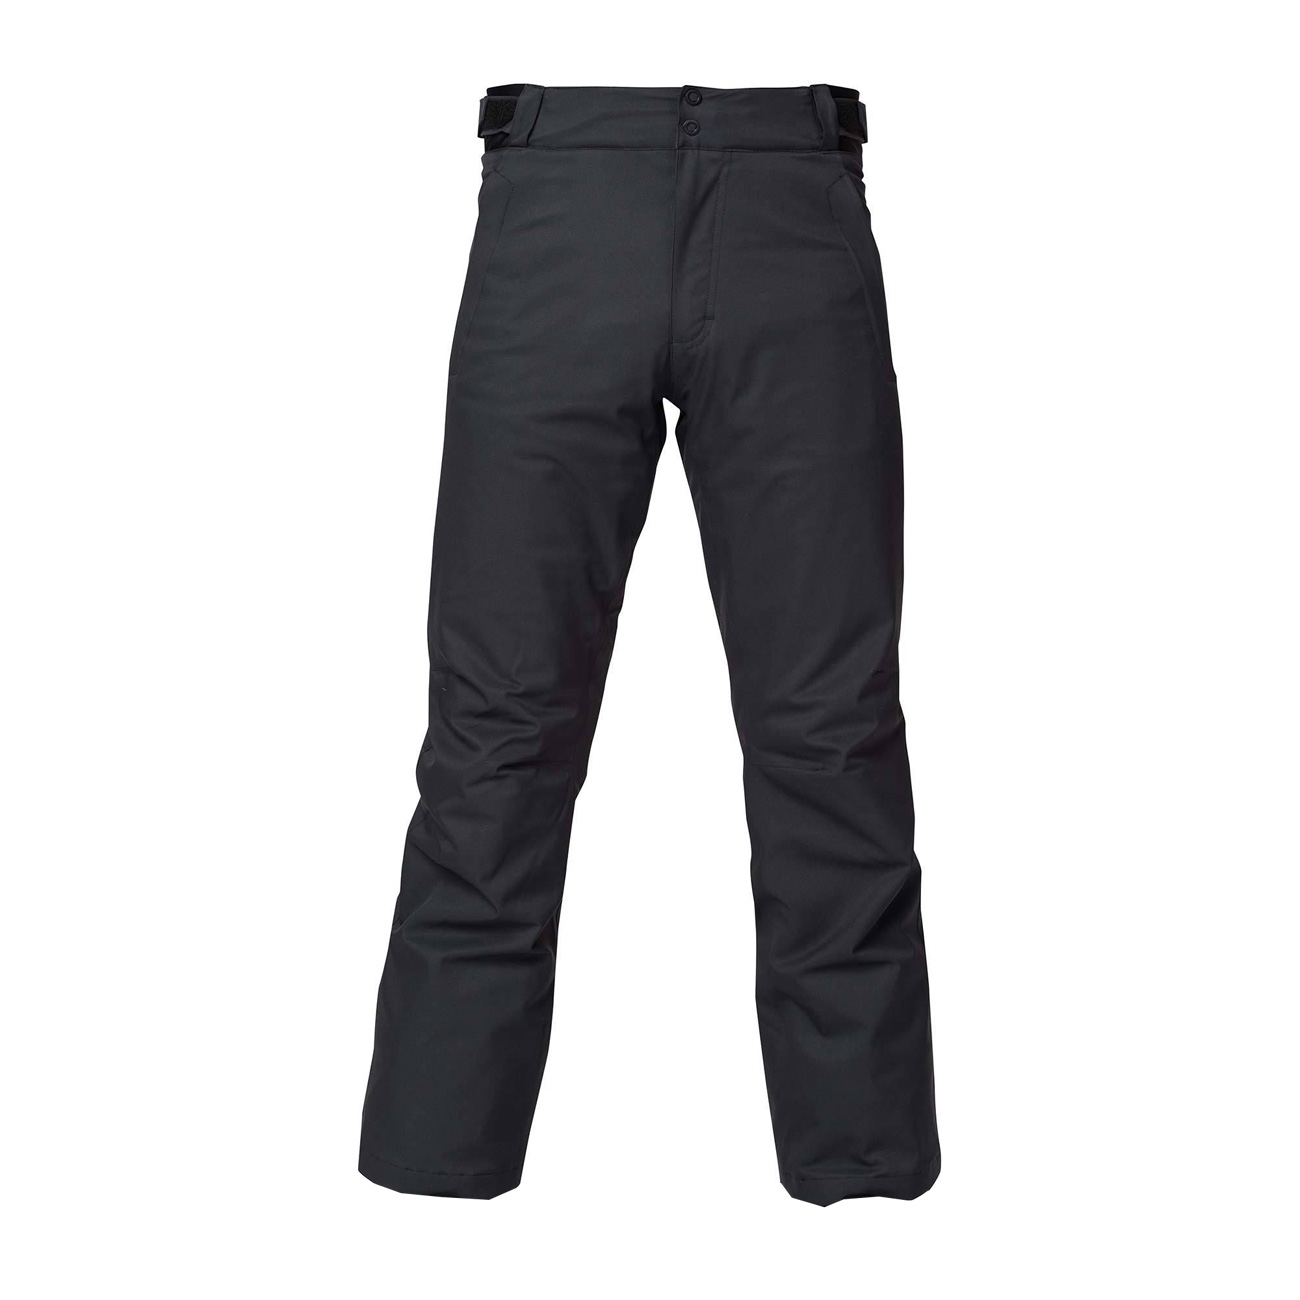 Rossignol Men s Winter Ski Trousers- Black 6b68f4cab